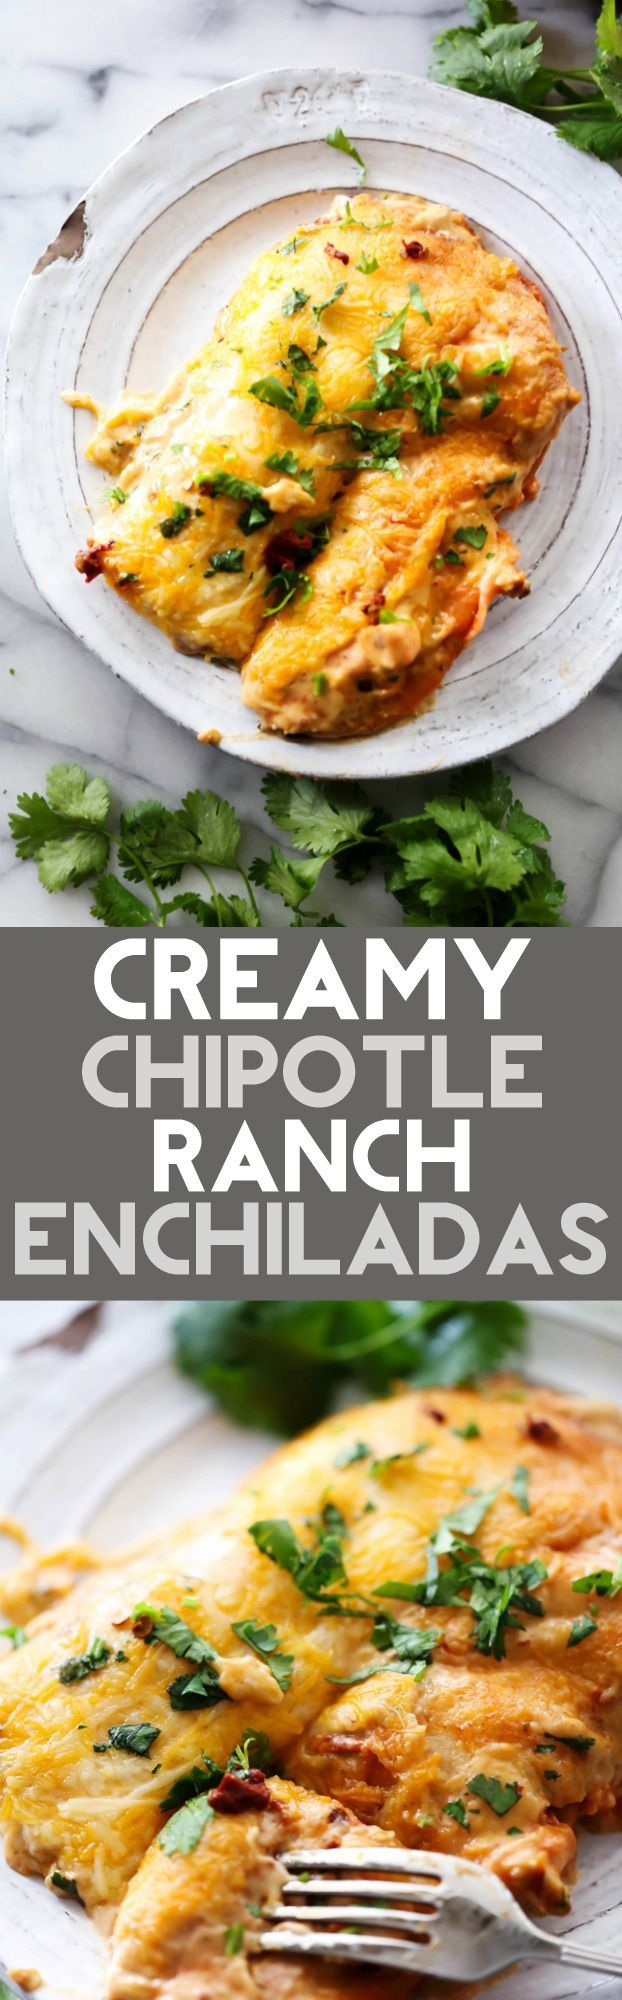 These Creamy Chipotle Ranch Enchiladas are out of this world! They have a kick…